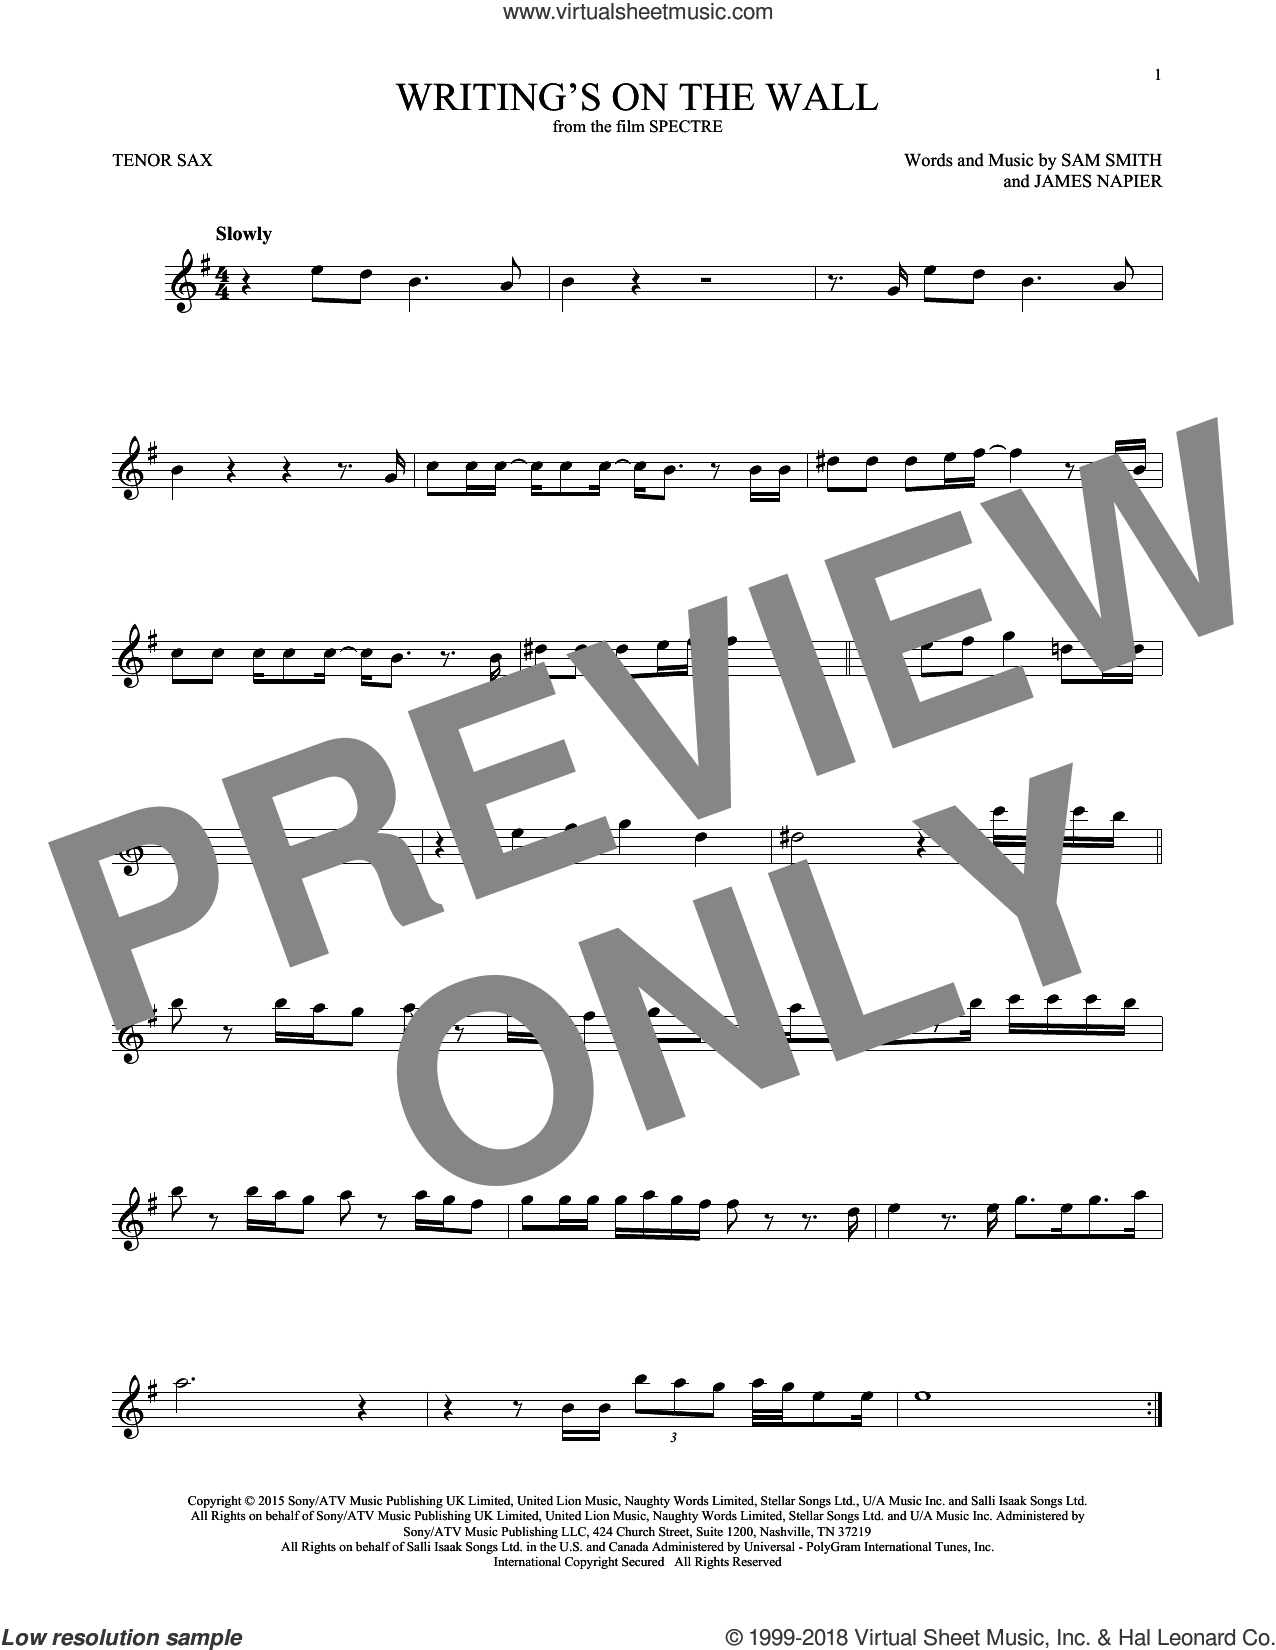 Writing's On The Wall sheet music for tenor saxophone solo ( Sax) by Sam Smith and James Napier, intermediate tenor saxophone ( Sax)